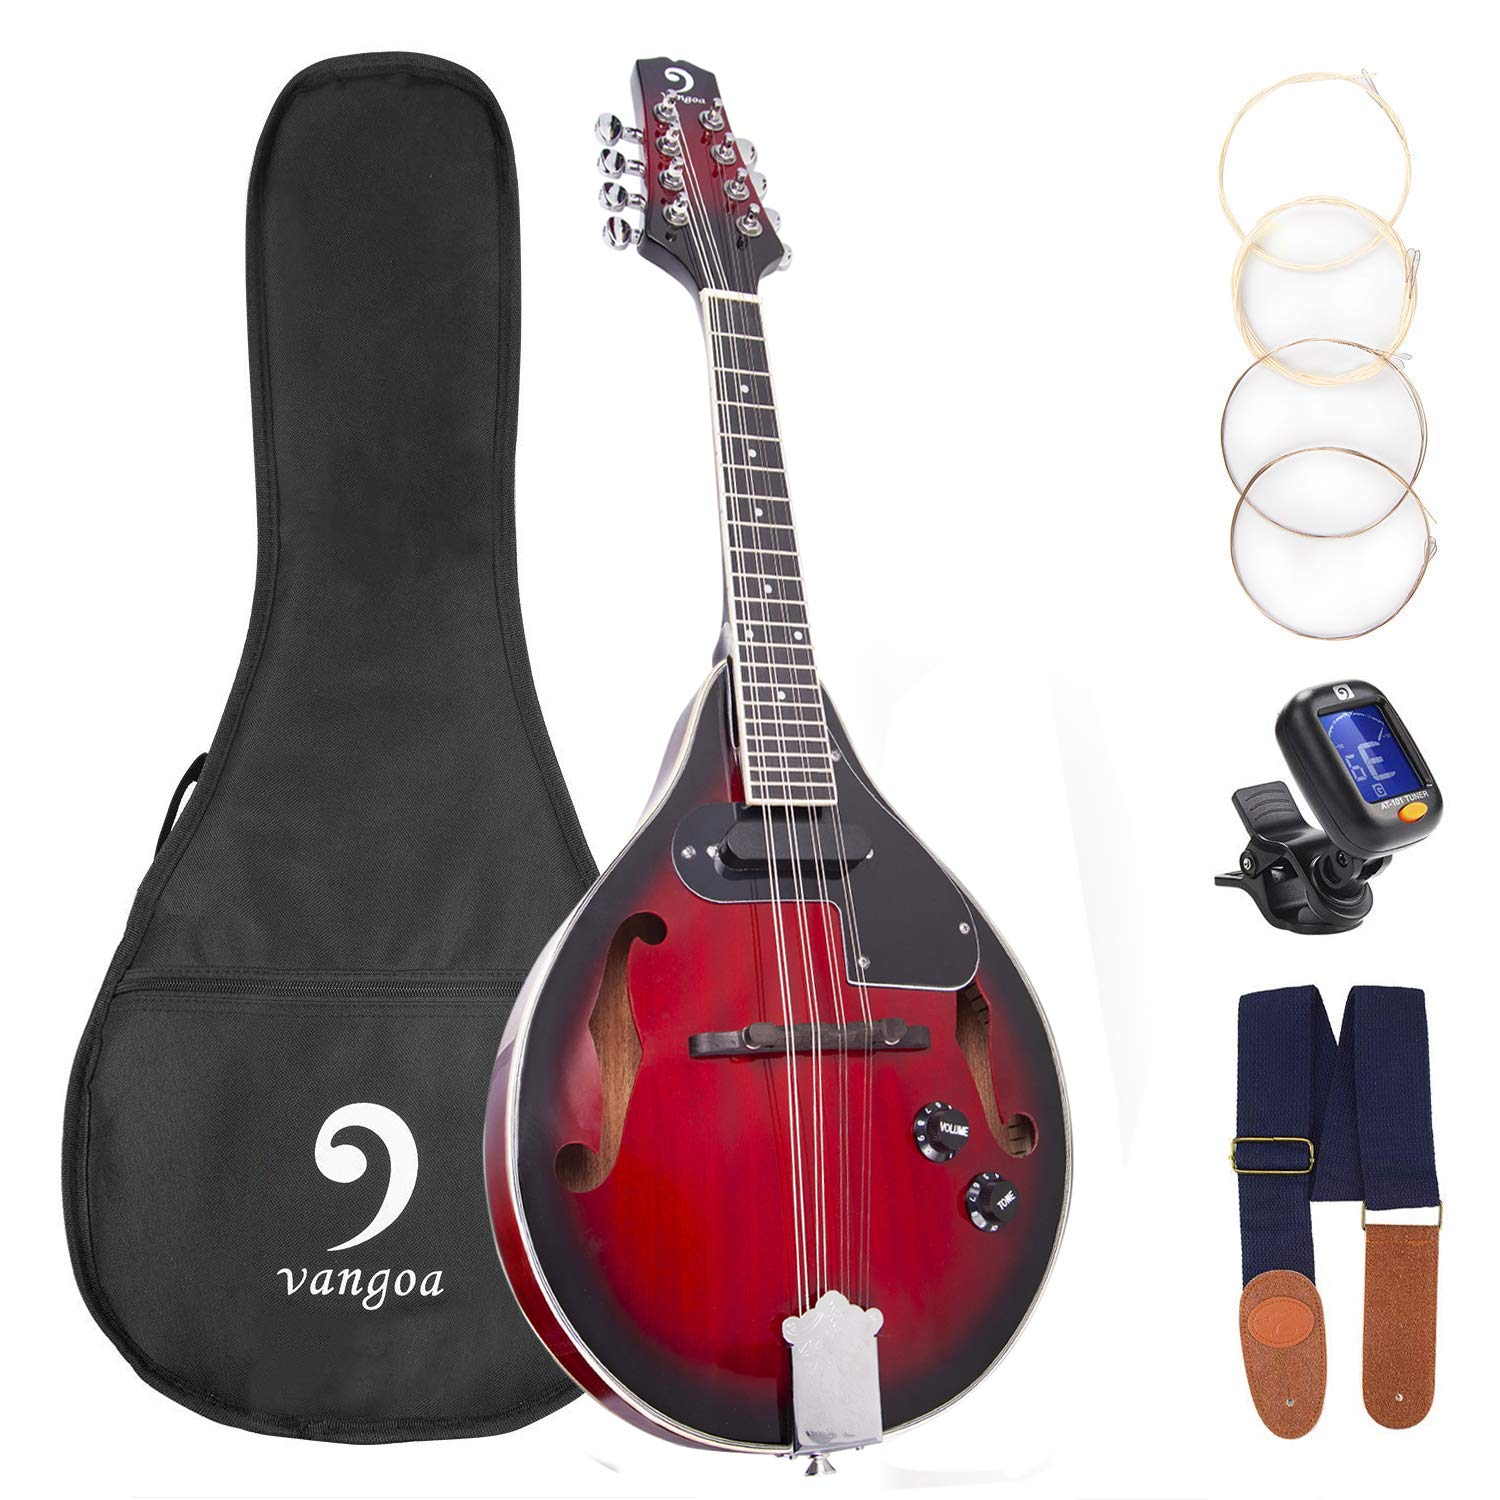 Mandolin A Style Acoustic Electric Mandolins Instrument Vintage Red Sunburst Mahogany Wood for Beginner Adults, by Vangoa (New version)